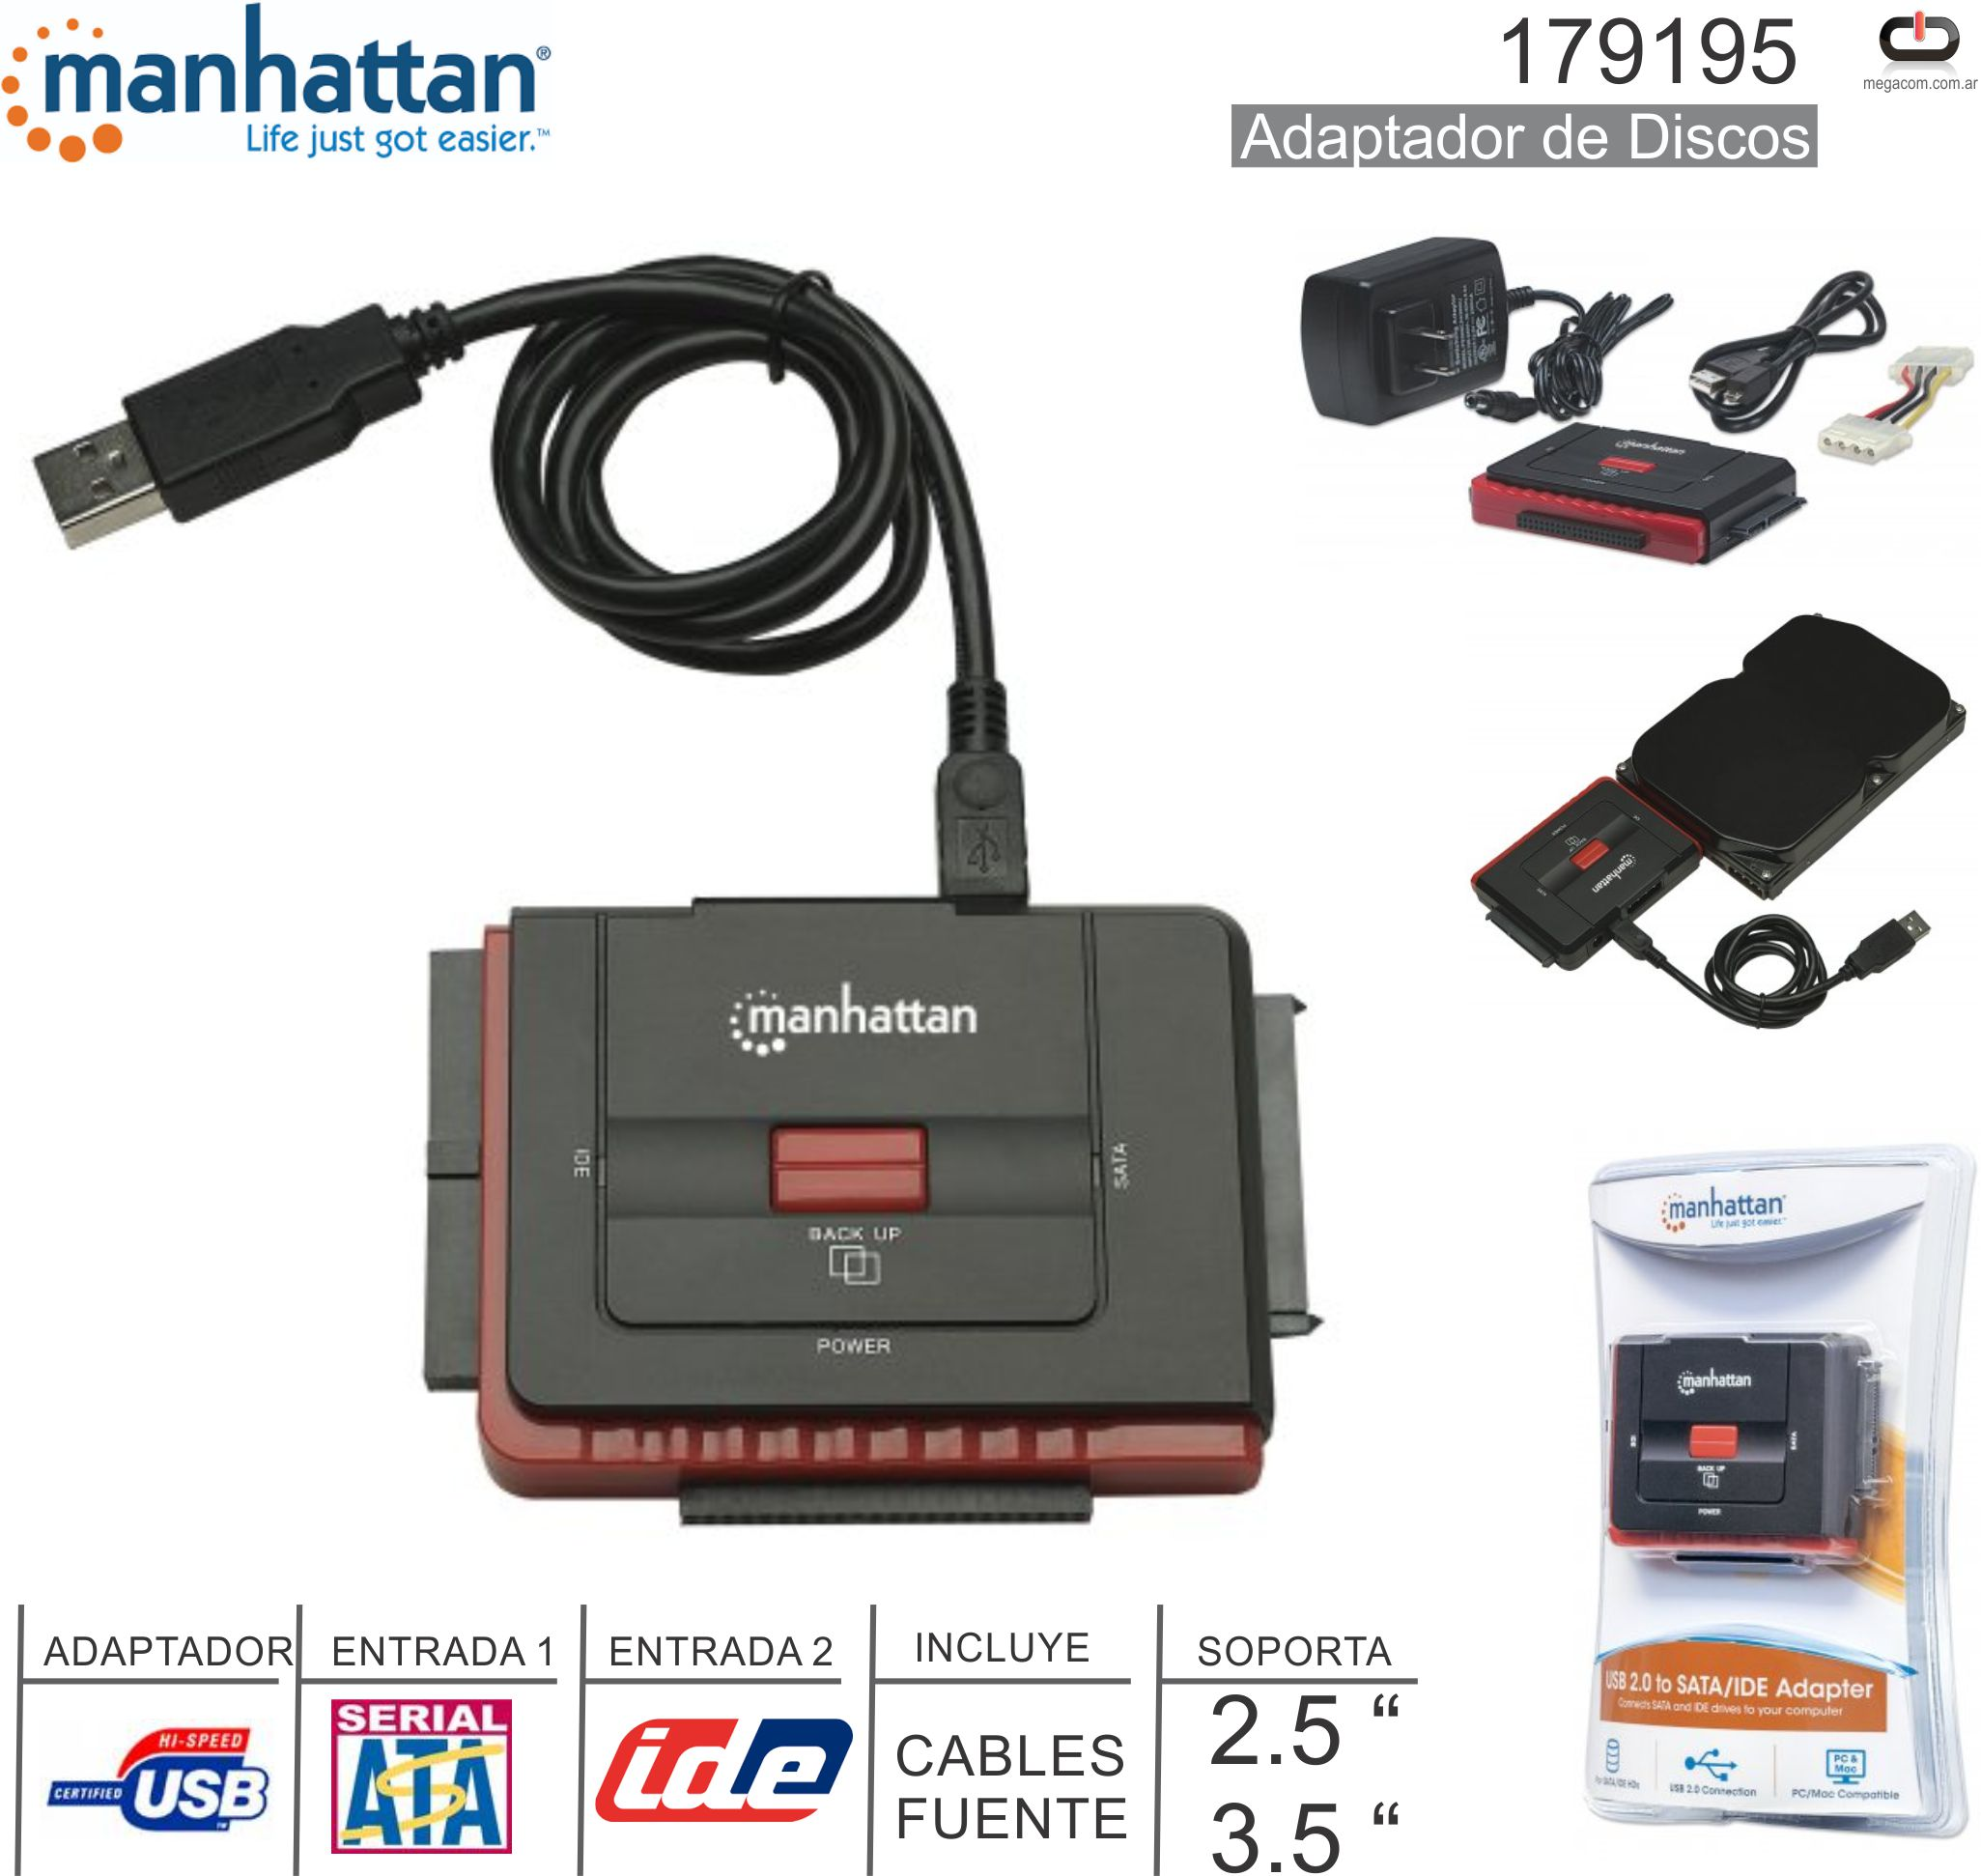 Adaptador USB M - SATA-IDE MANHATTAN 179195